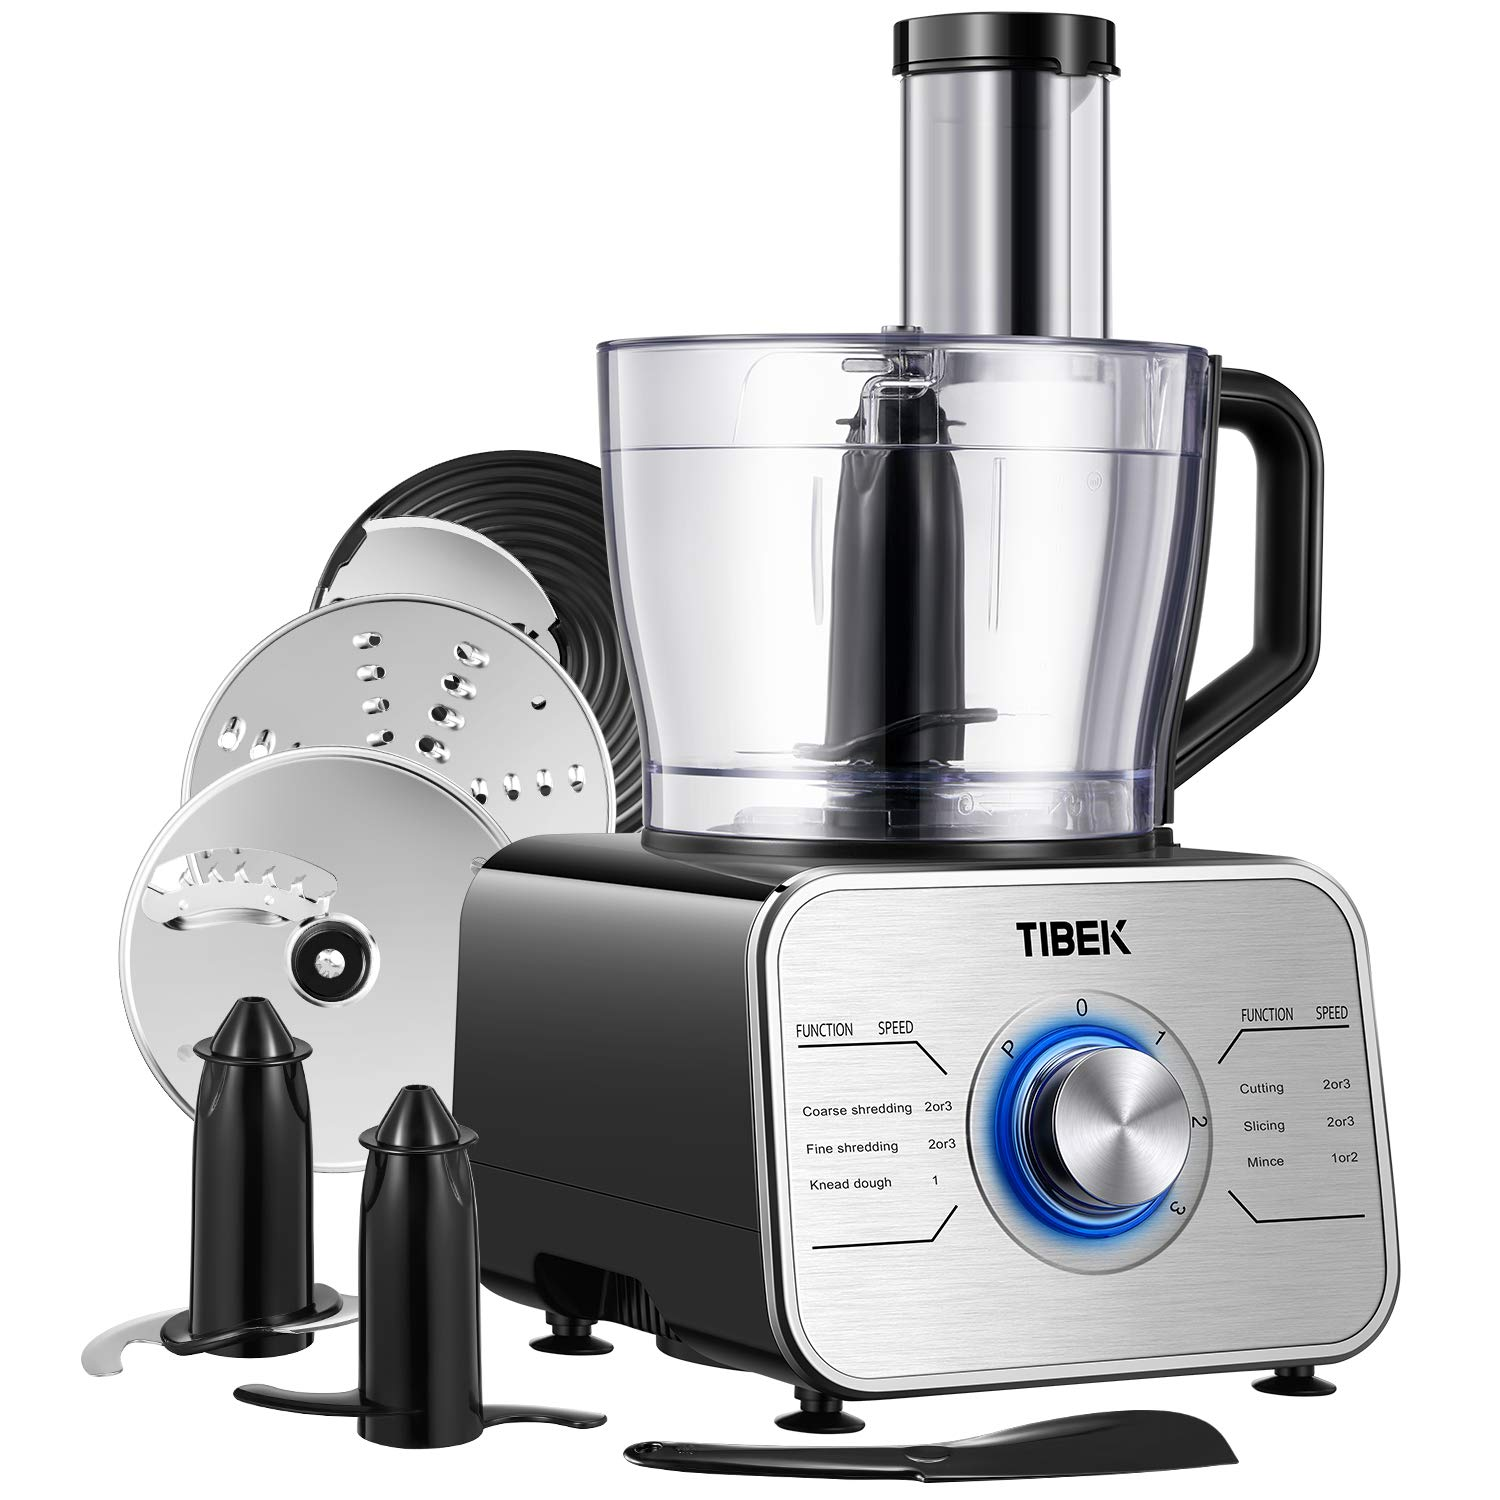 Food Processor 12-Cup, Multi-Function Food Processor 6 Main Functions with Chopper Blade, Dough Blade, Shredder, Slicing Attachments, 3 Speed 600W Powerful Processor, Silver Tibek